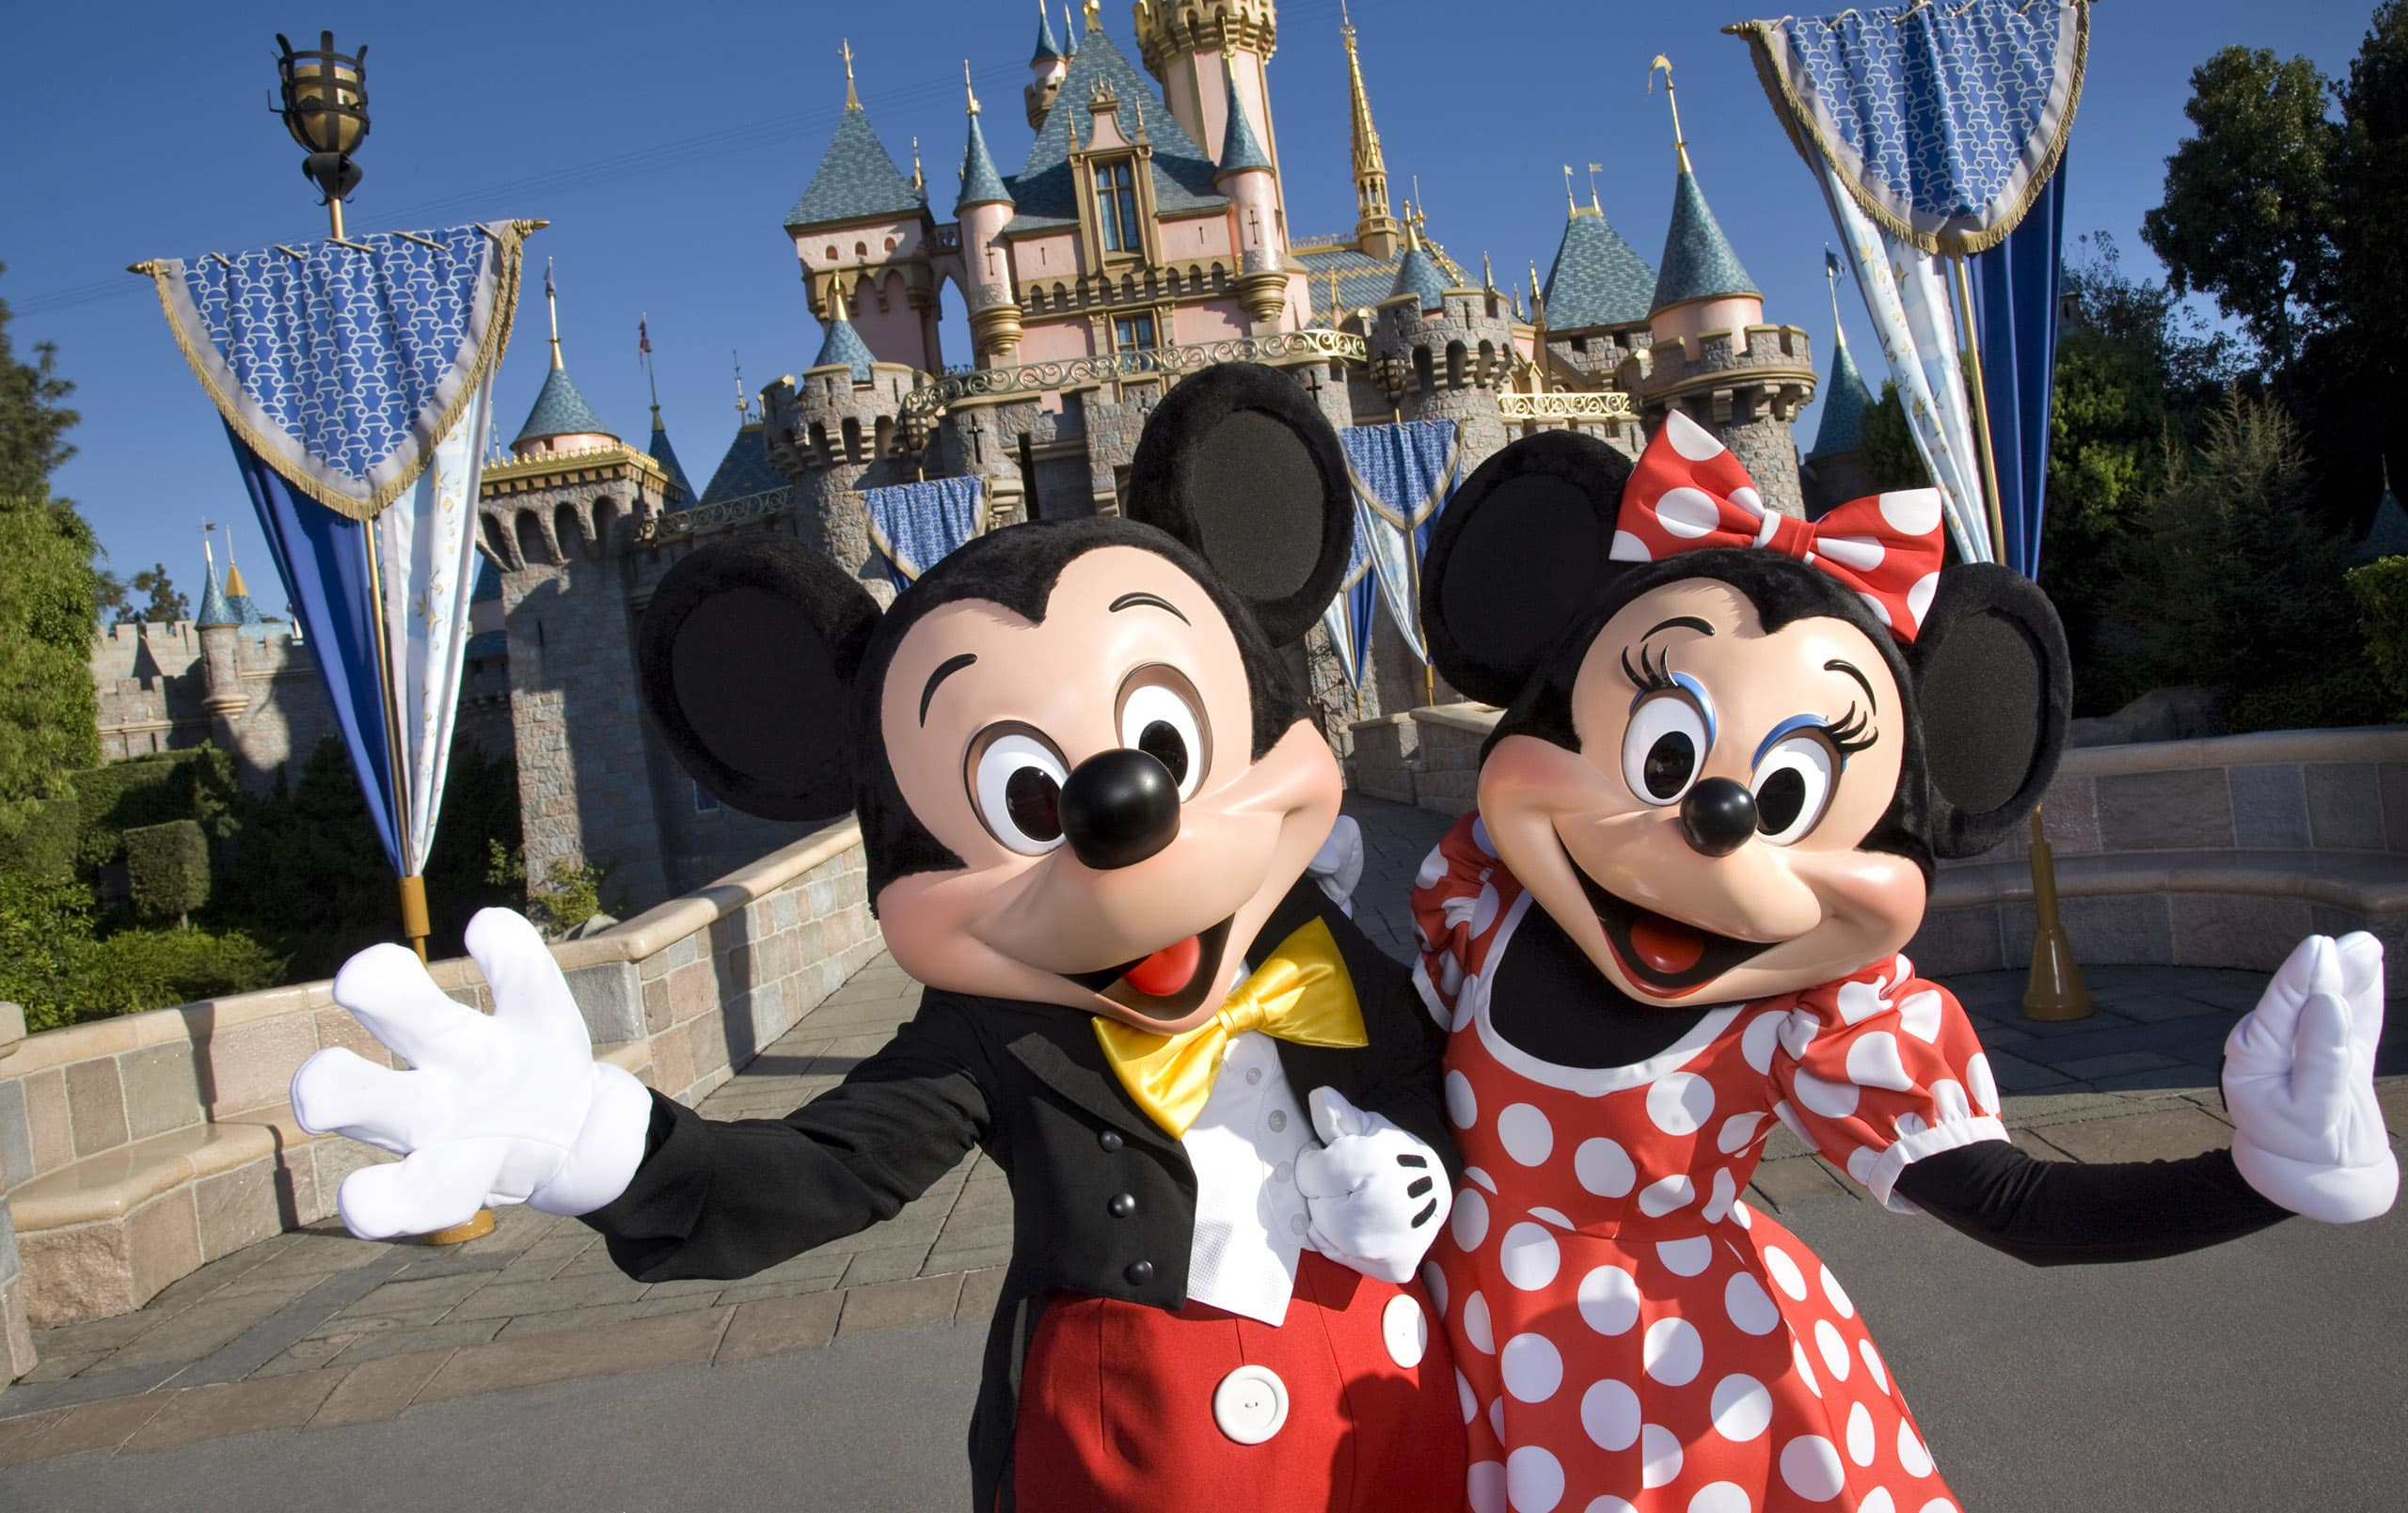 Minnie and Mickey in front of Sleeping Beauty Castle